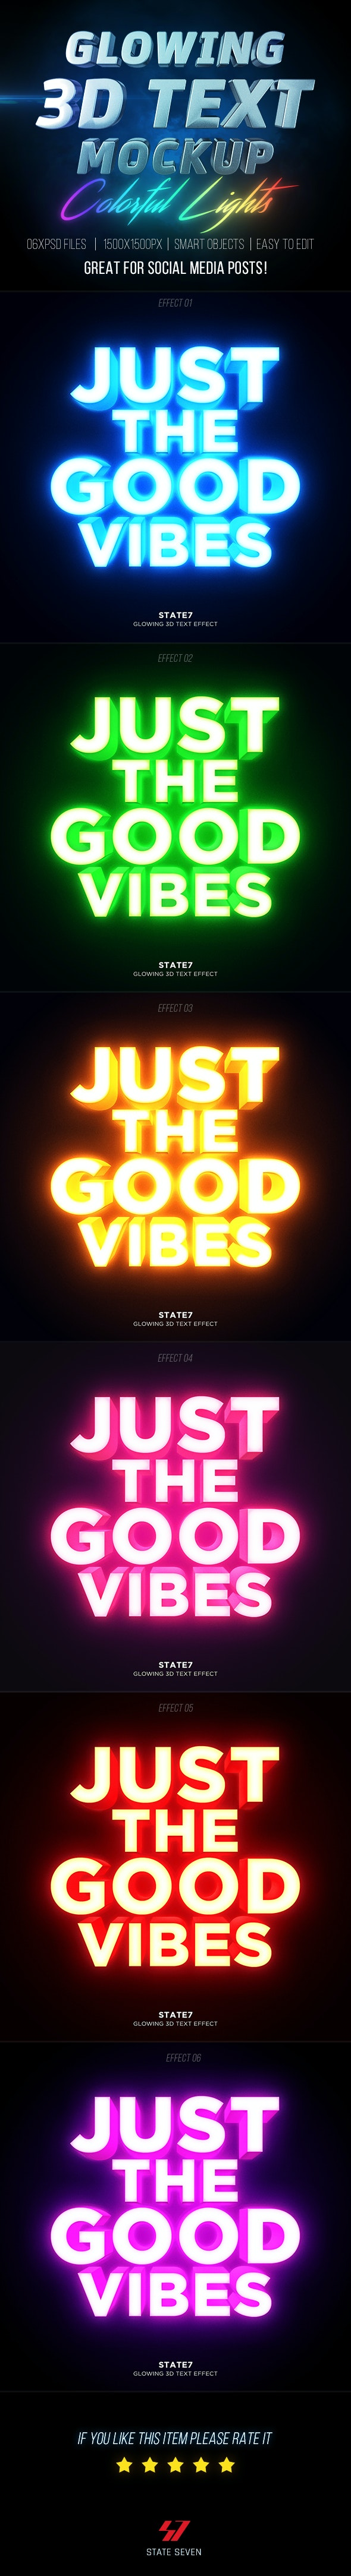 3D Text Mockup V2 - Text Effects Actions